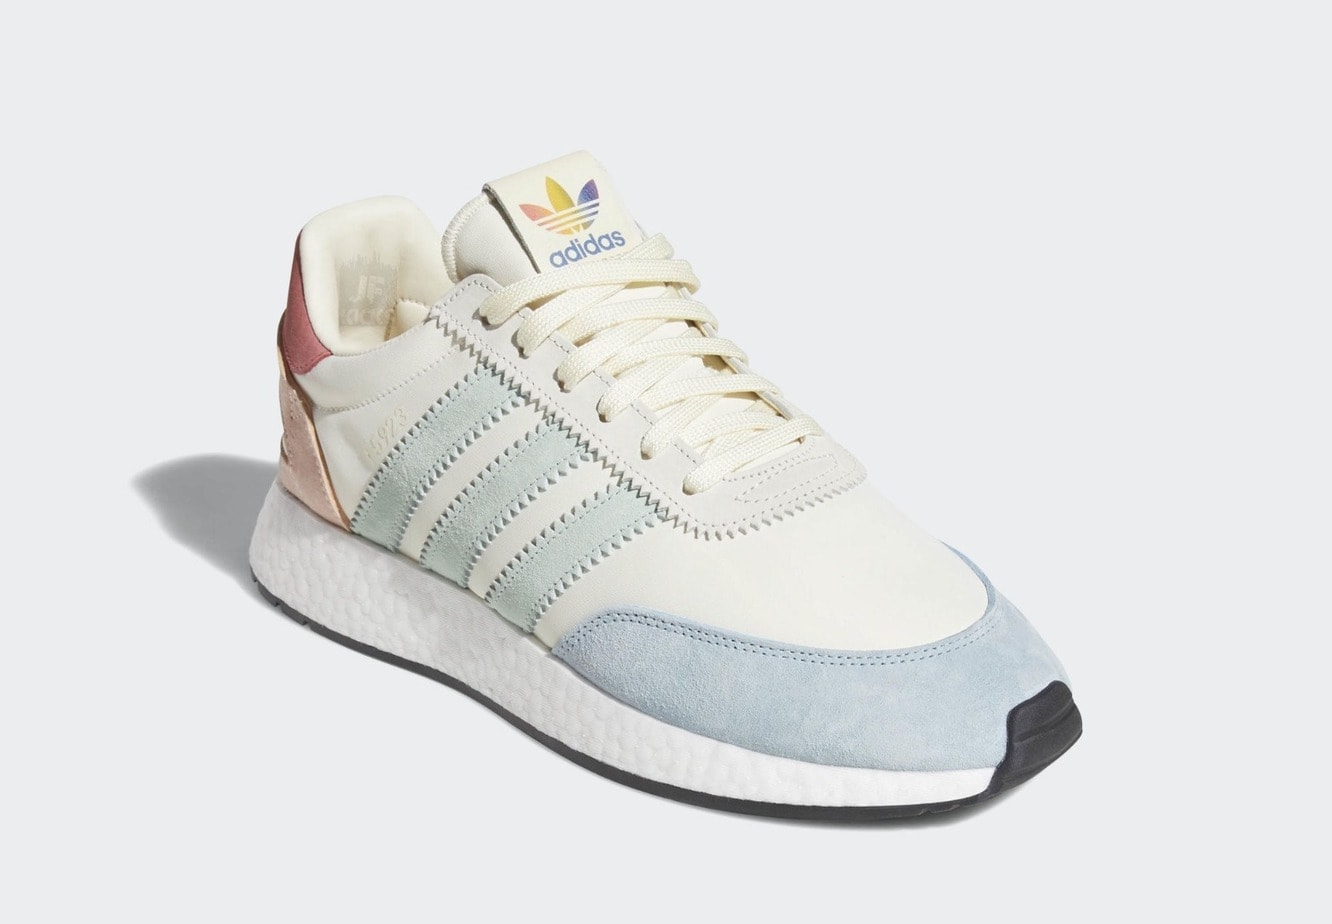 new style e07a4 414fc adidas celebrates Pride month every year now, issuing an annual colorful  pack of popular models, and donating 10% of the proceeds to charity.